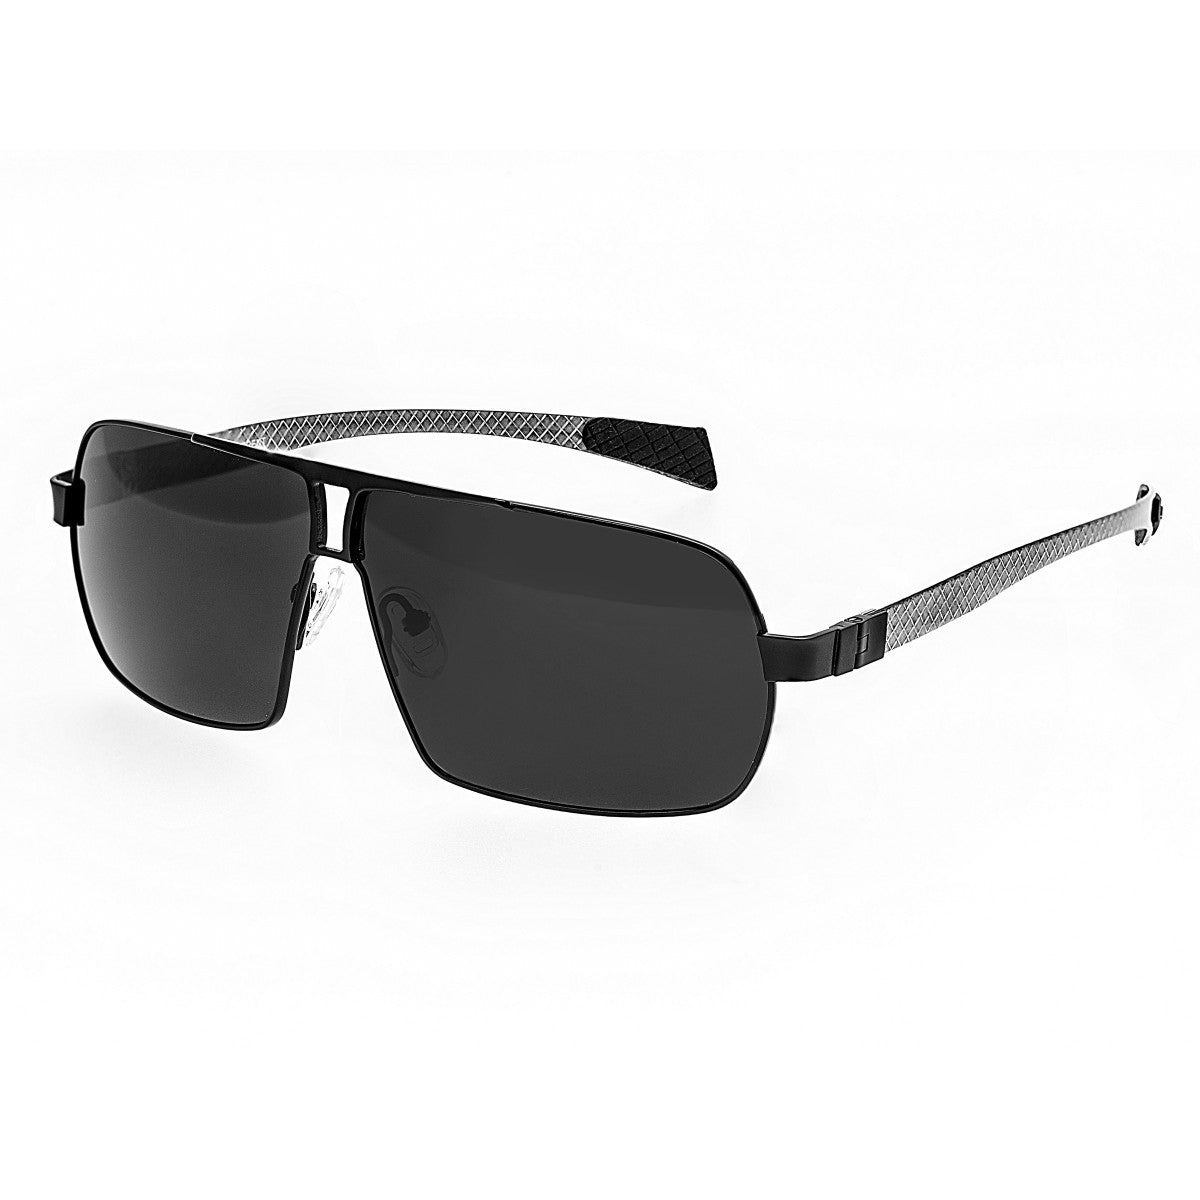 Breed Sagittarius Titanium Polarized Sunglasses - GENT.ONE